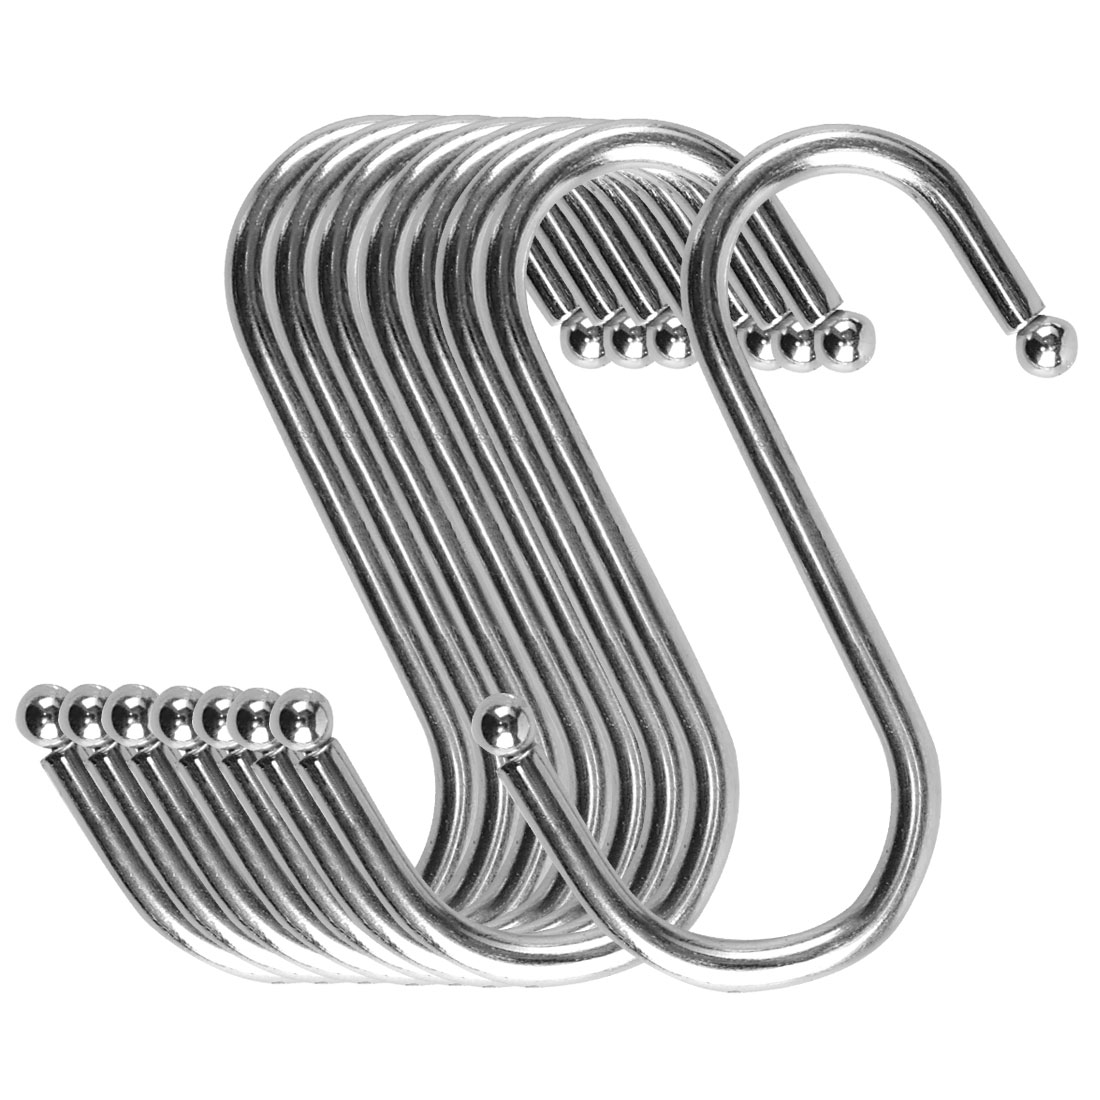 S Shape Hook Rack Stainless Steel for Kitchenware Clothes Towel Holder 8 Pack